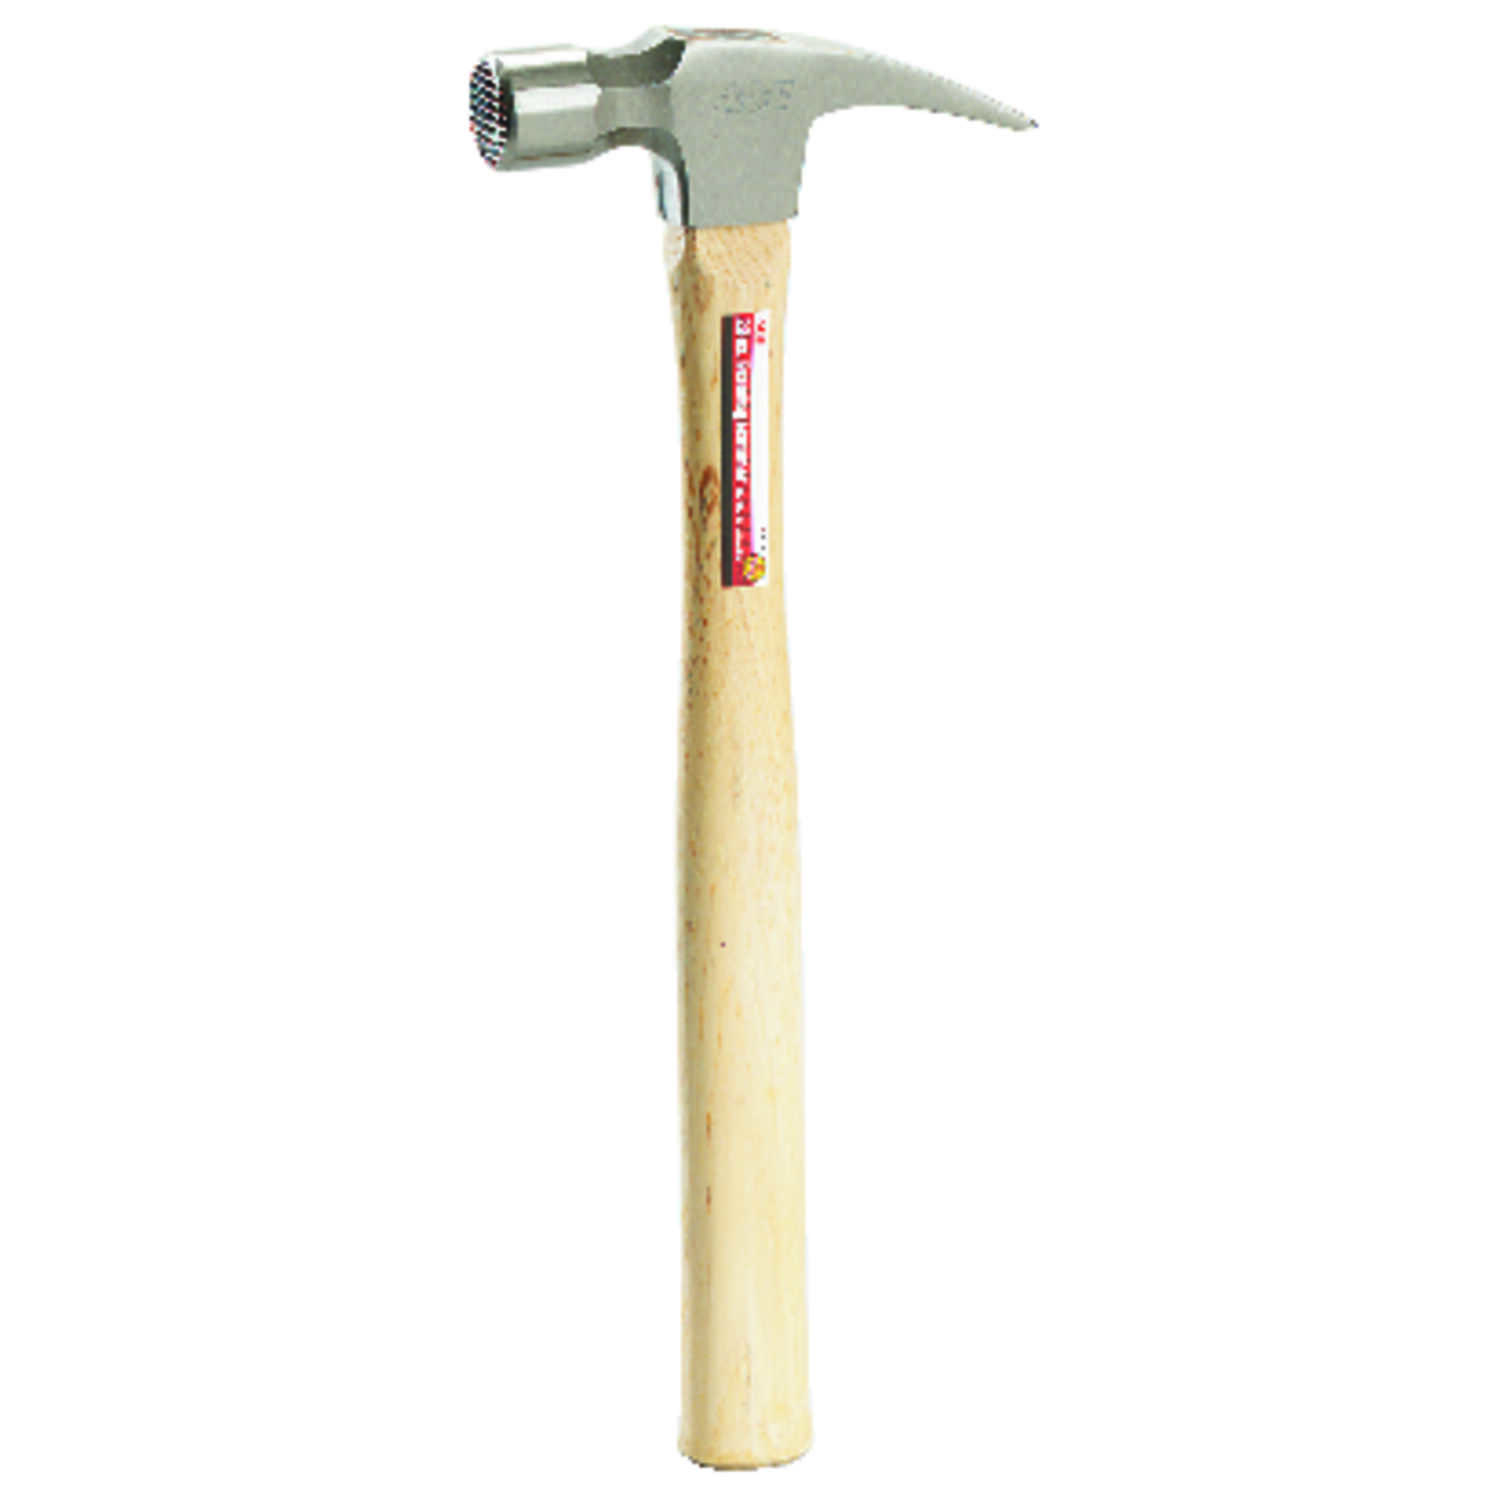 Ace  22 oz. Framing Hammer  Carbon Steel Head Hickory Handle  15.81 in. L